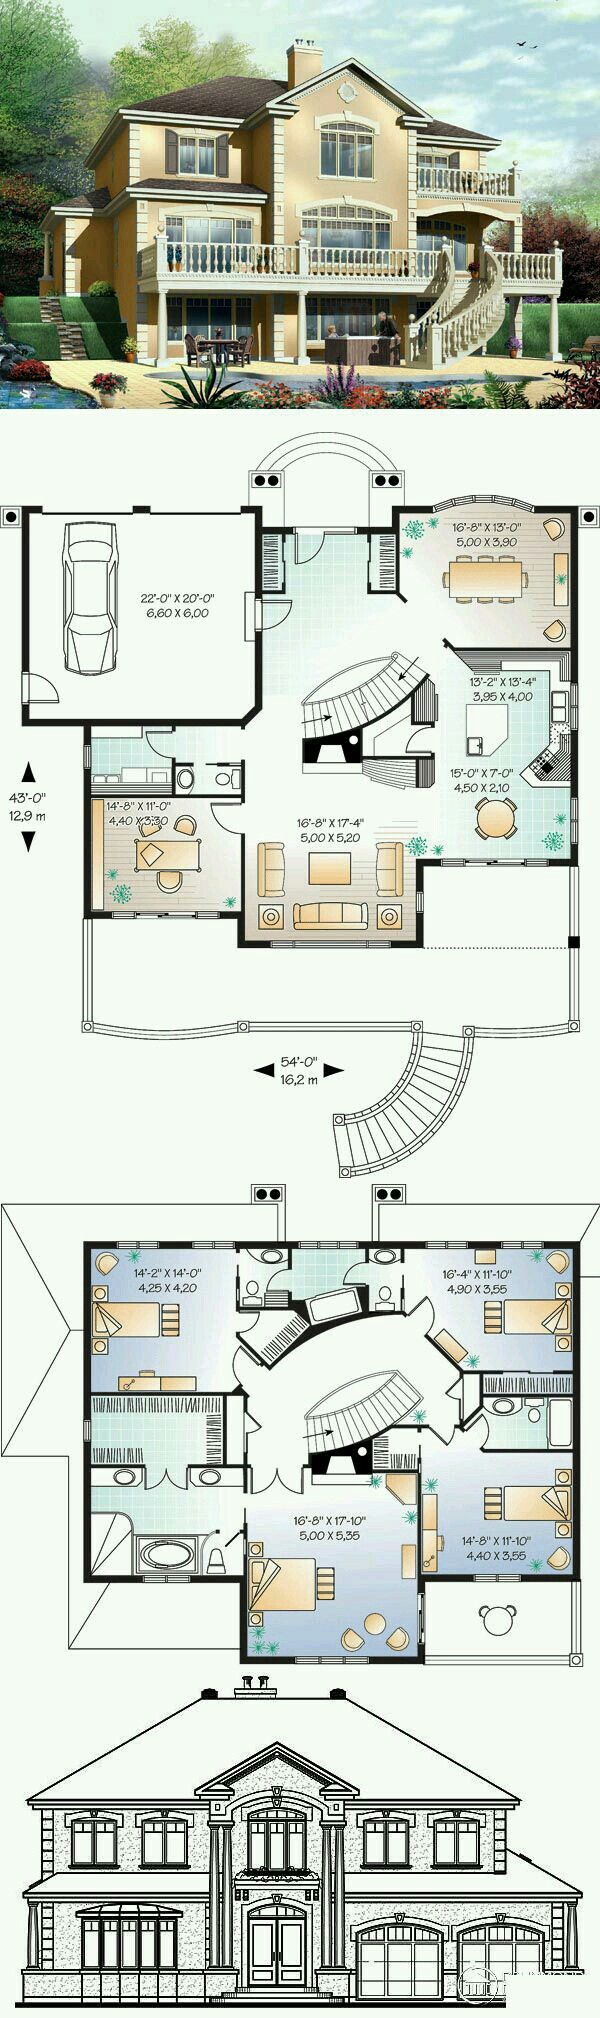 49 Best Luxury House Plans Images On Pinterest Luxury House Plans Luxury Houses And Dream